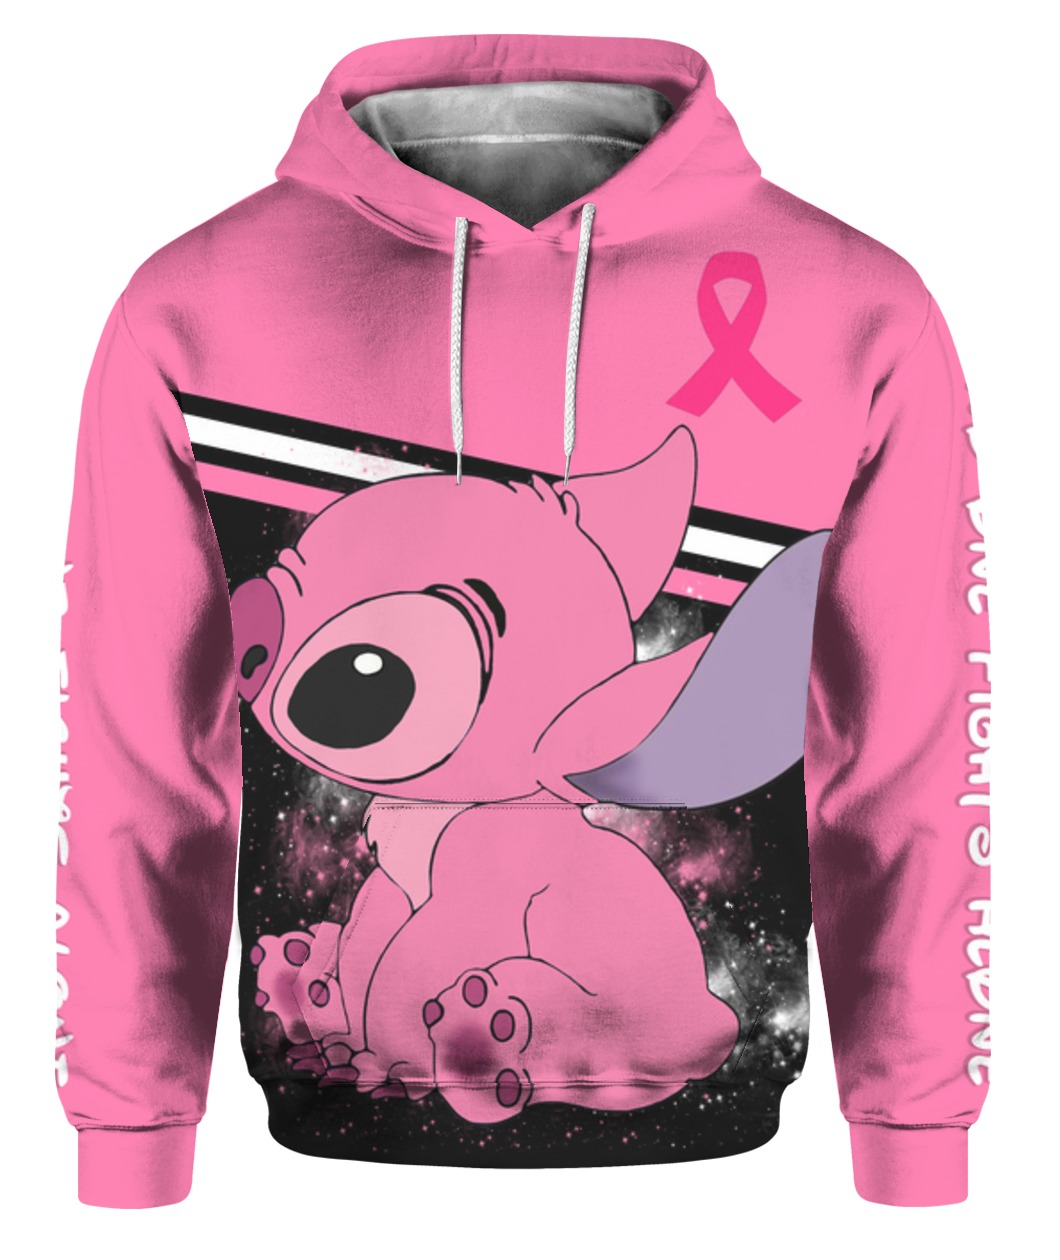 Stitch breast cancer awareness all over print hoodie 1